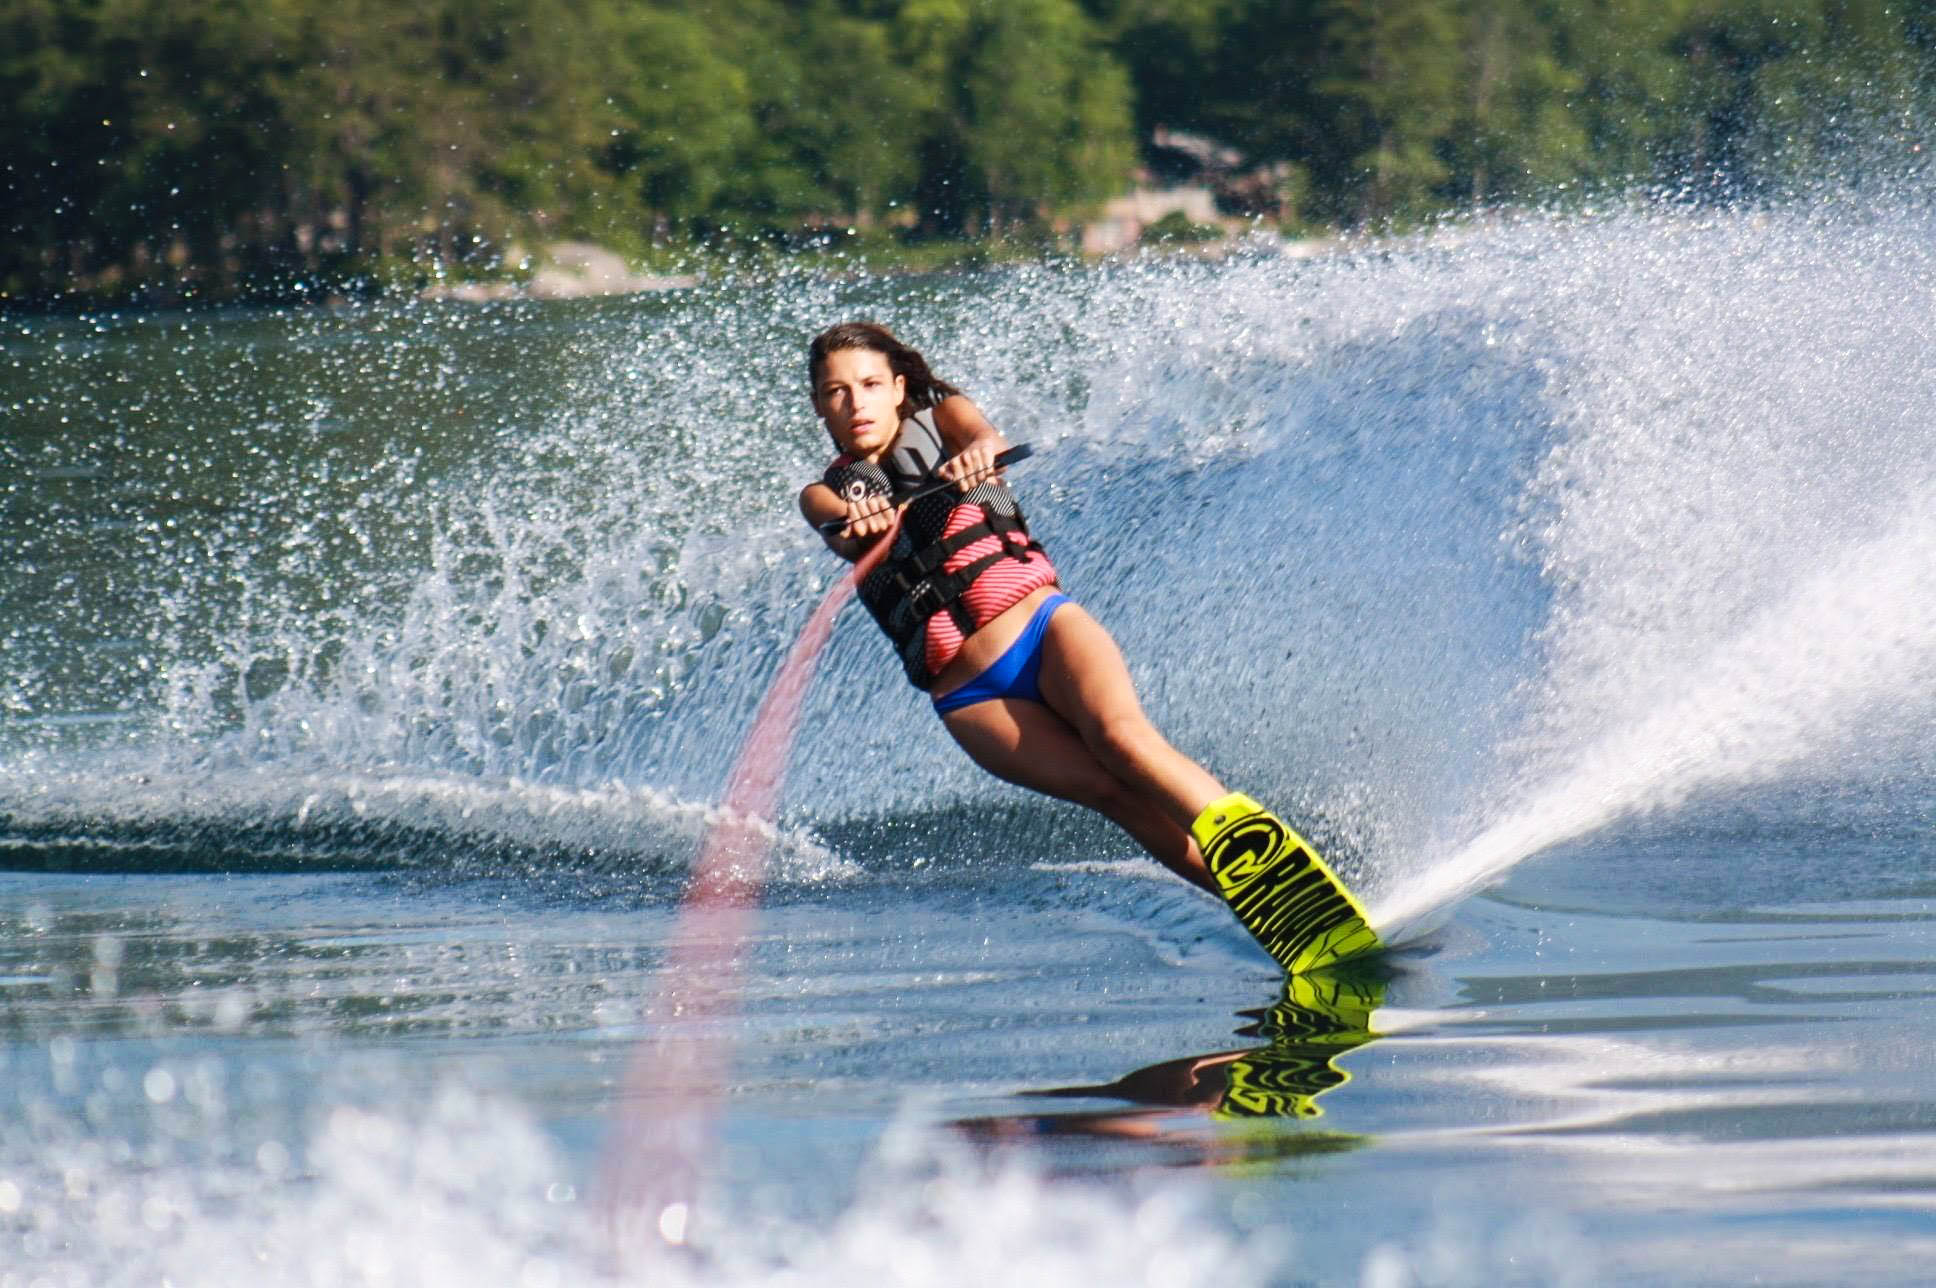 Waterski Lessons New Hampshire